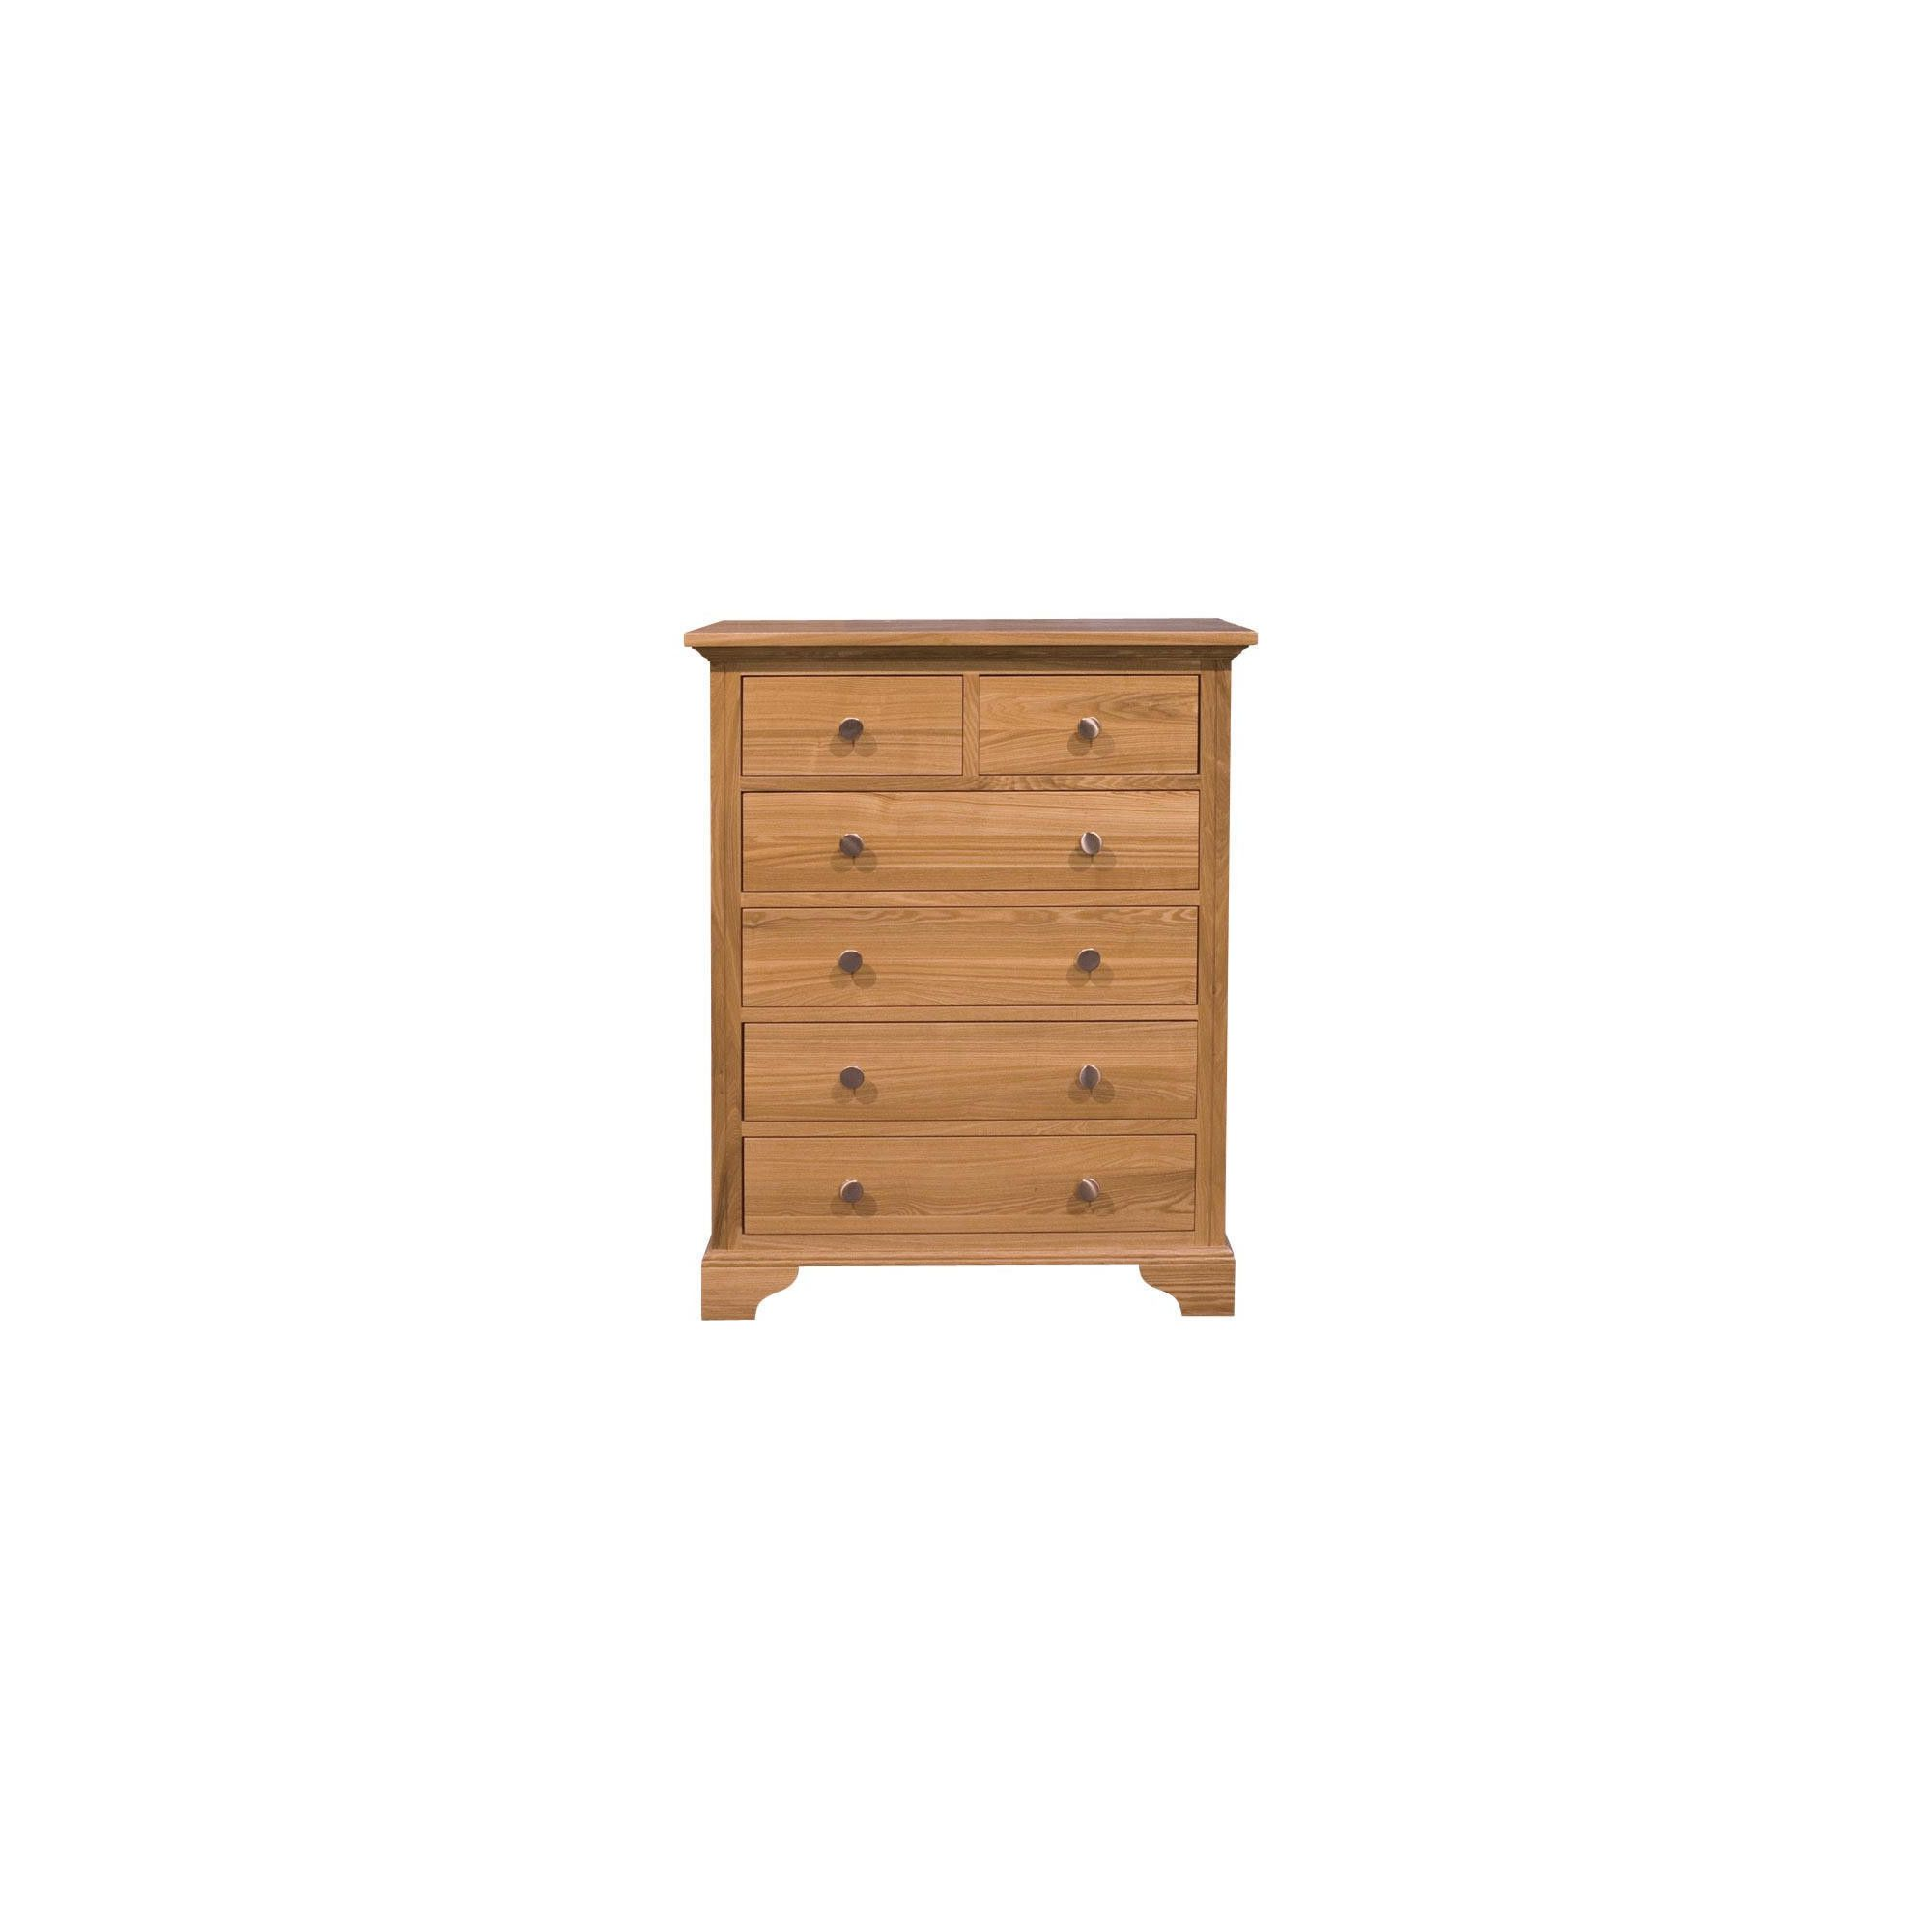 Alterton Furniture New England 2 over 4 Drawer Chest at Tesco Direct